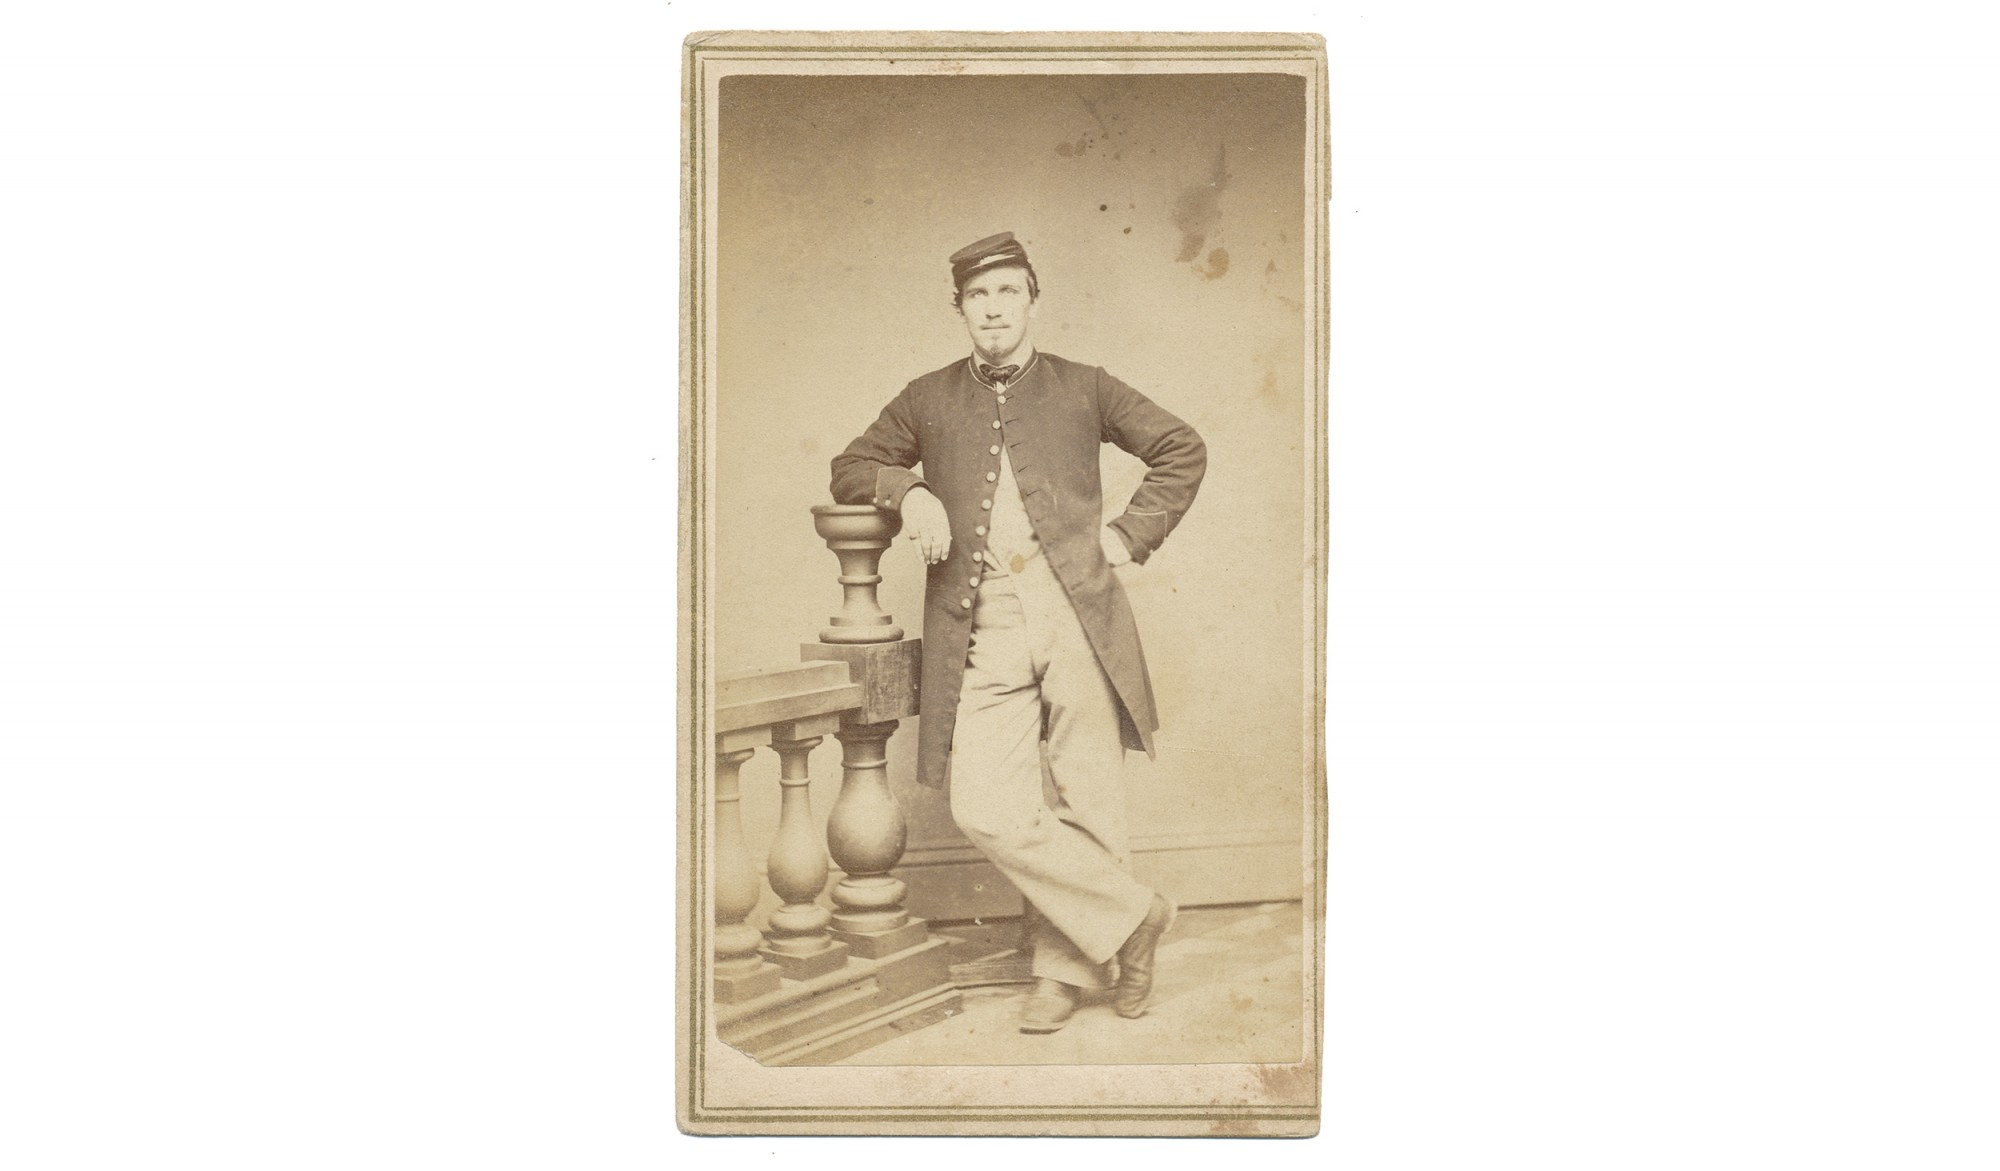 CDV OF 11TH NEW HAMPSHIRE SOLDIER